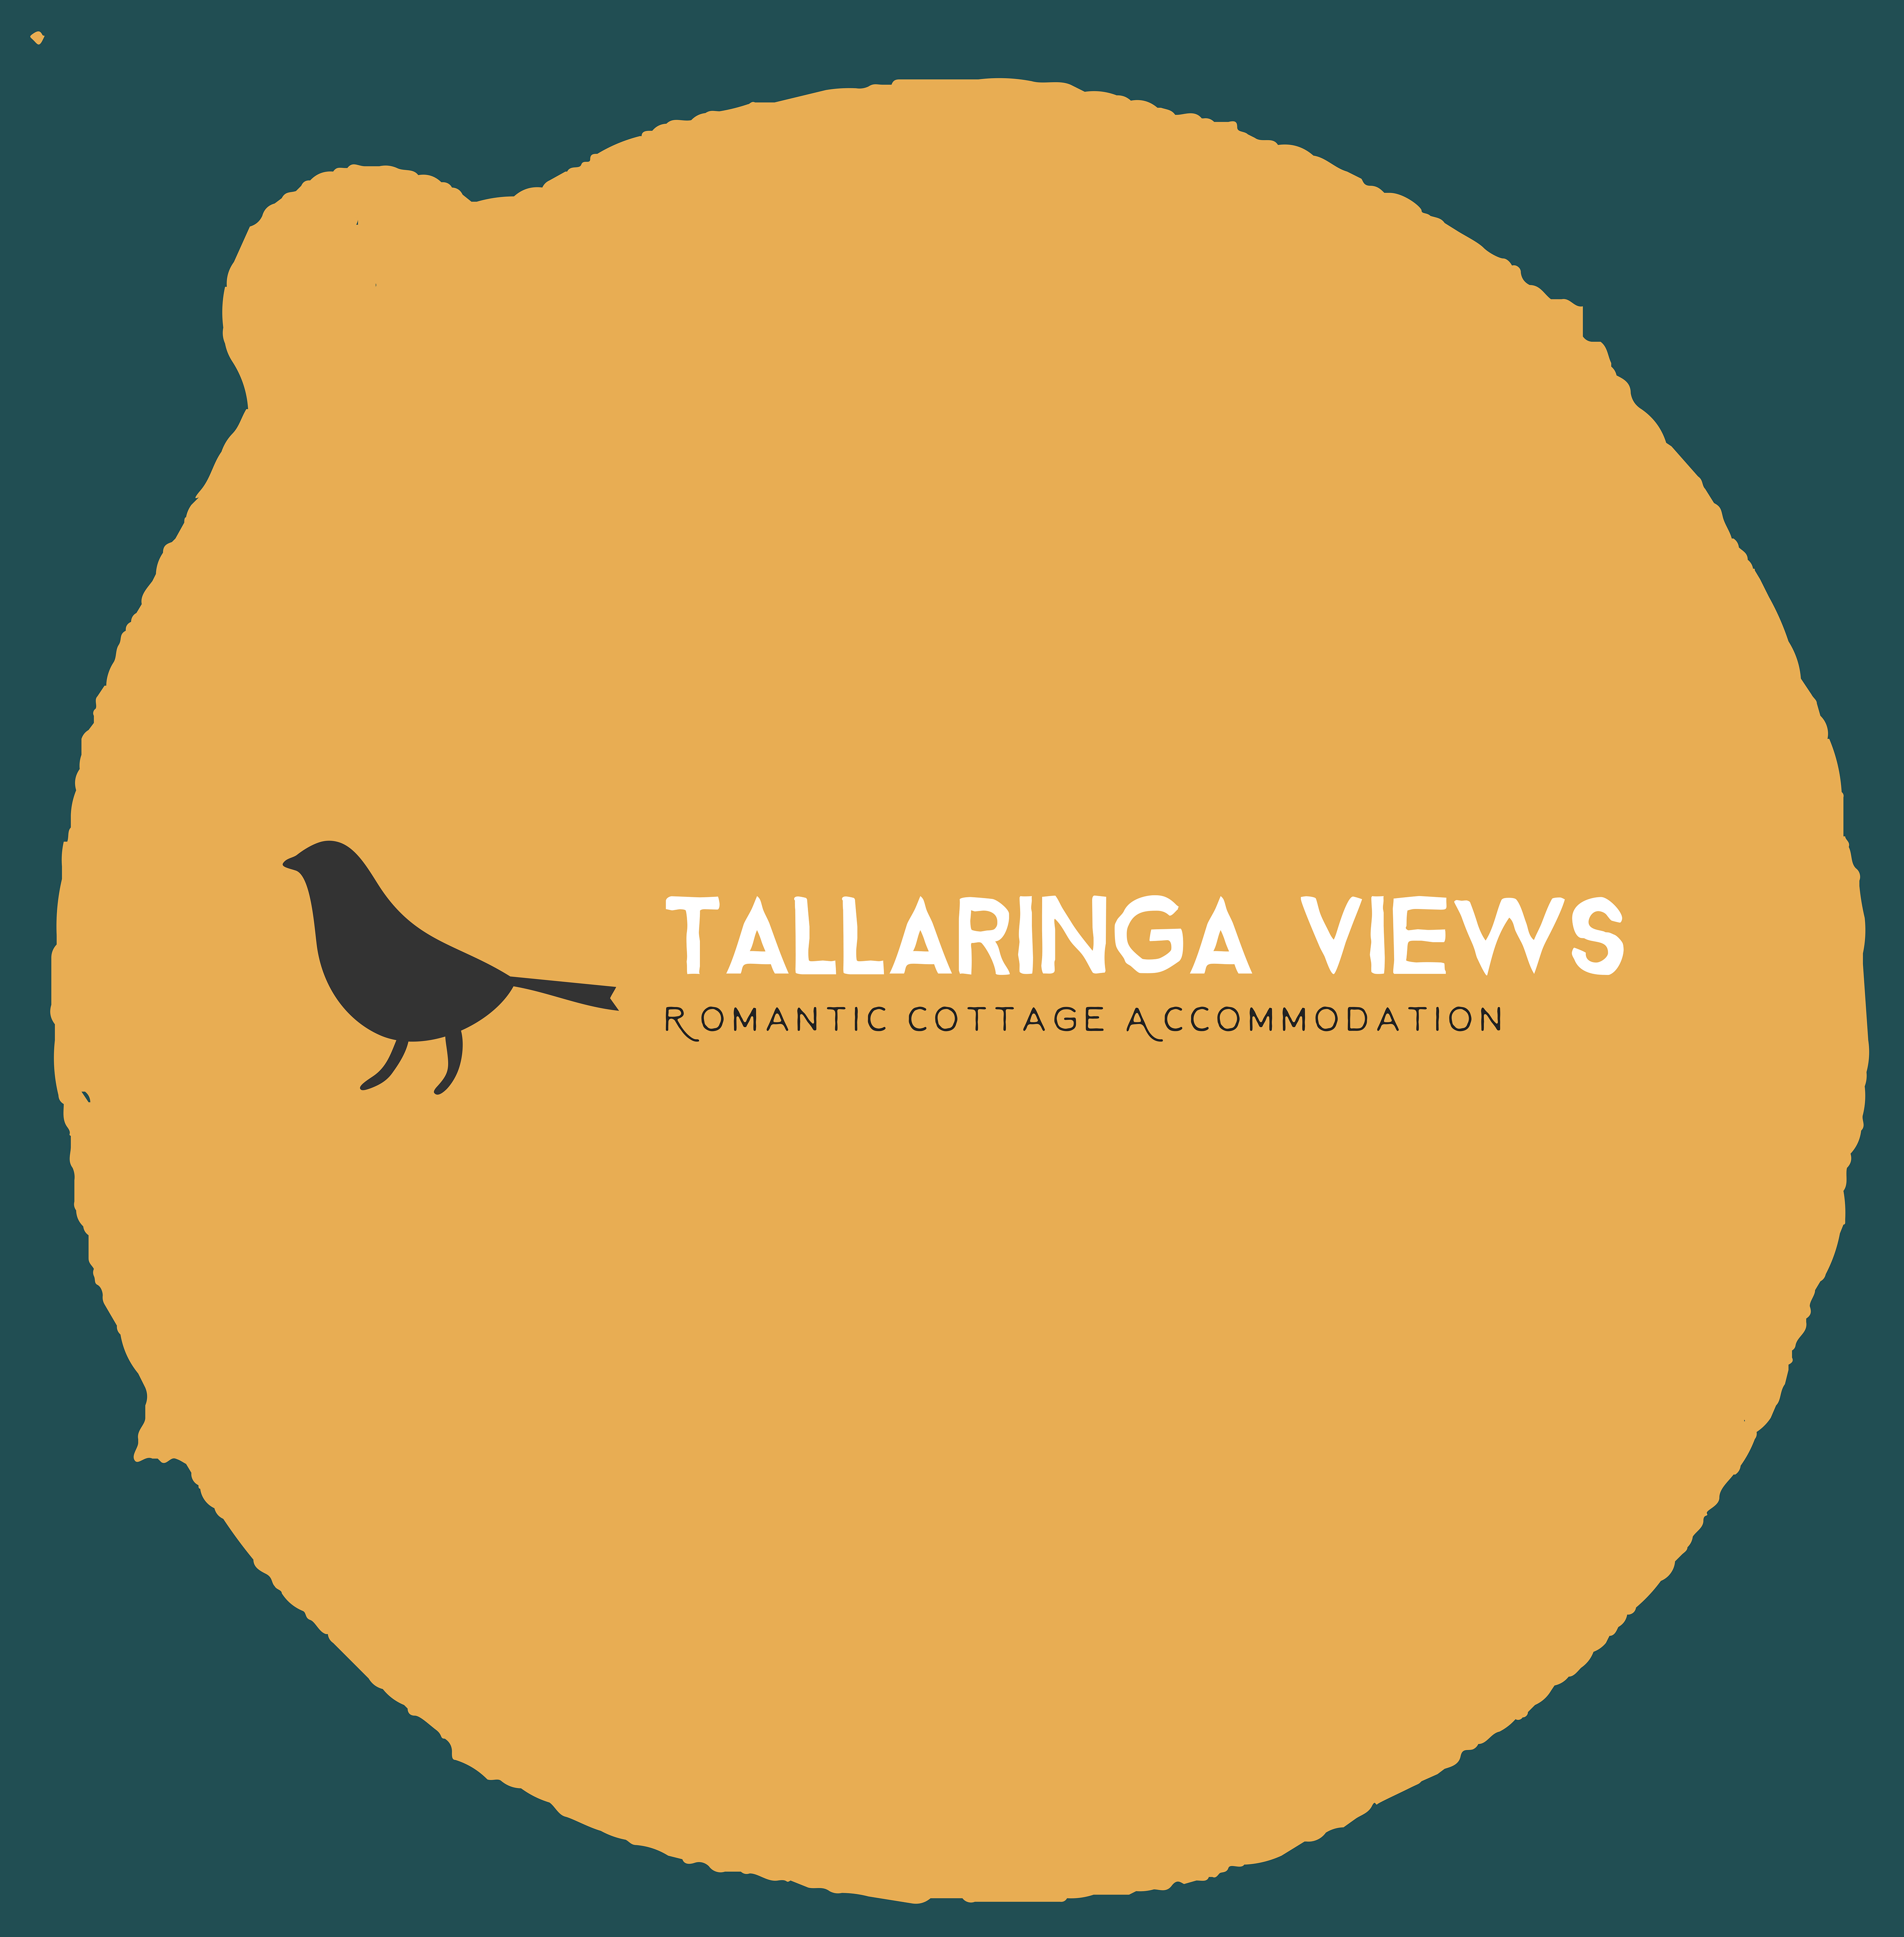 tallaringaviewscolor_with_background